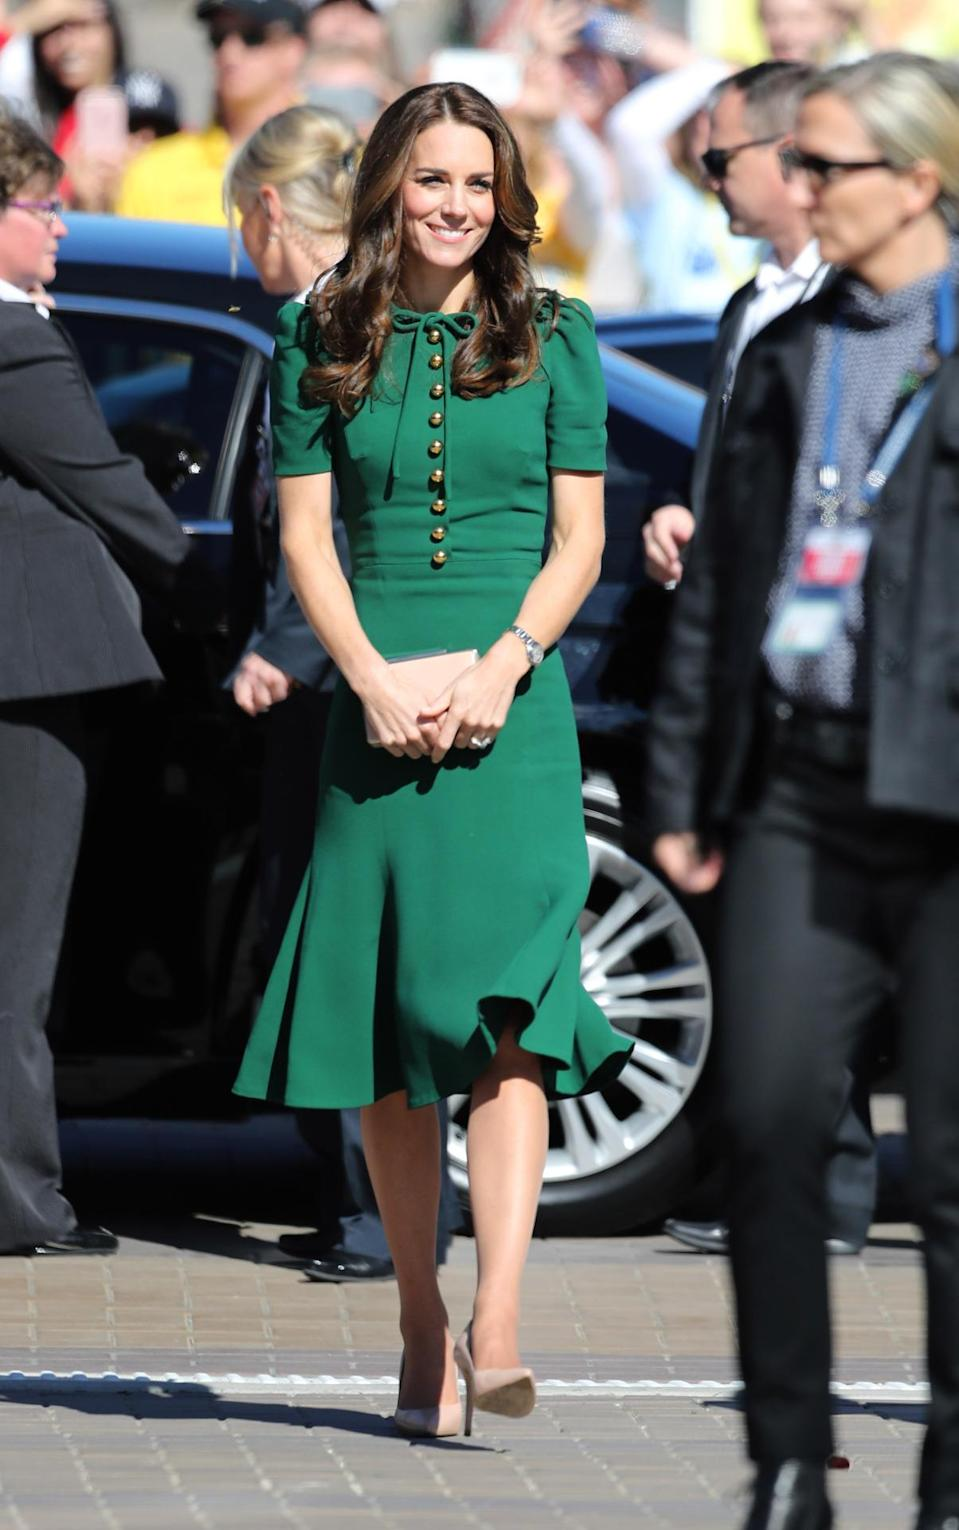 <p>Kate made a university trip in a bottle green dress by Dolce & Gabbana. A nude clutch and heels from her go-to retailer, LK Bennett, completed the look. </p><p><i>[Photo: PA]</i></p>